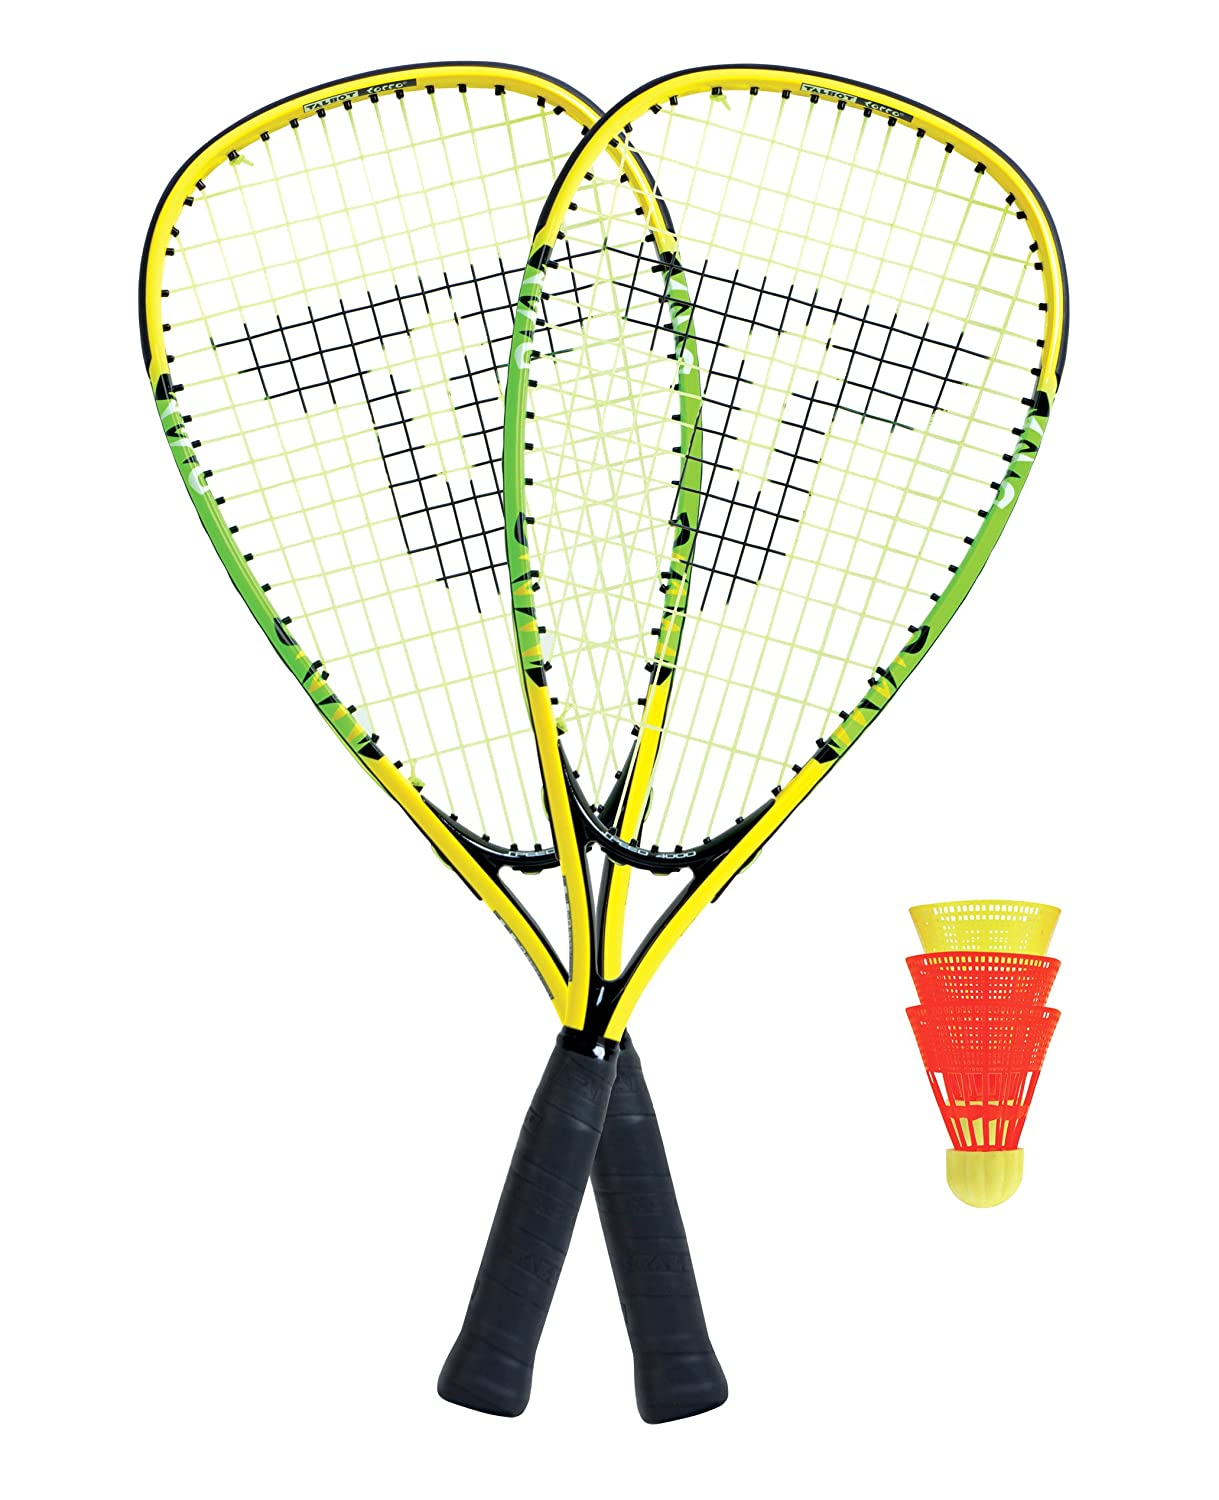 Talbot-Torro Speed-Badminton Set Speed 4000, 2 handliche Alu-Rackets 54,5cm, 3 windstabile Federbälle, im 3/4 Bag, 490104 Talbot Torro